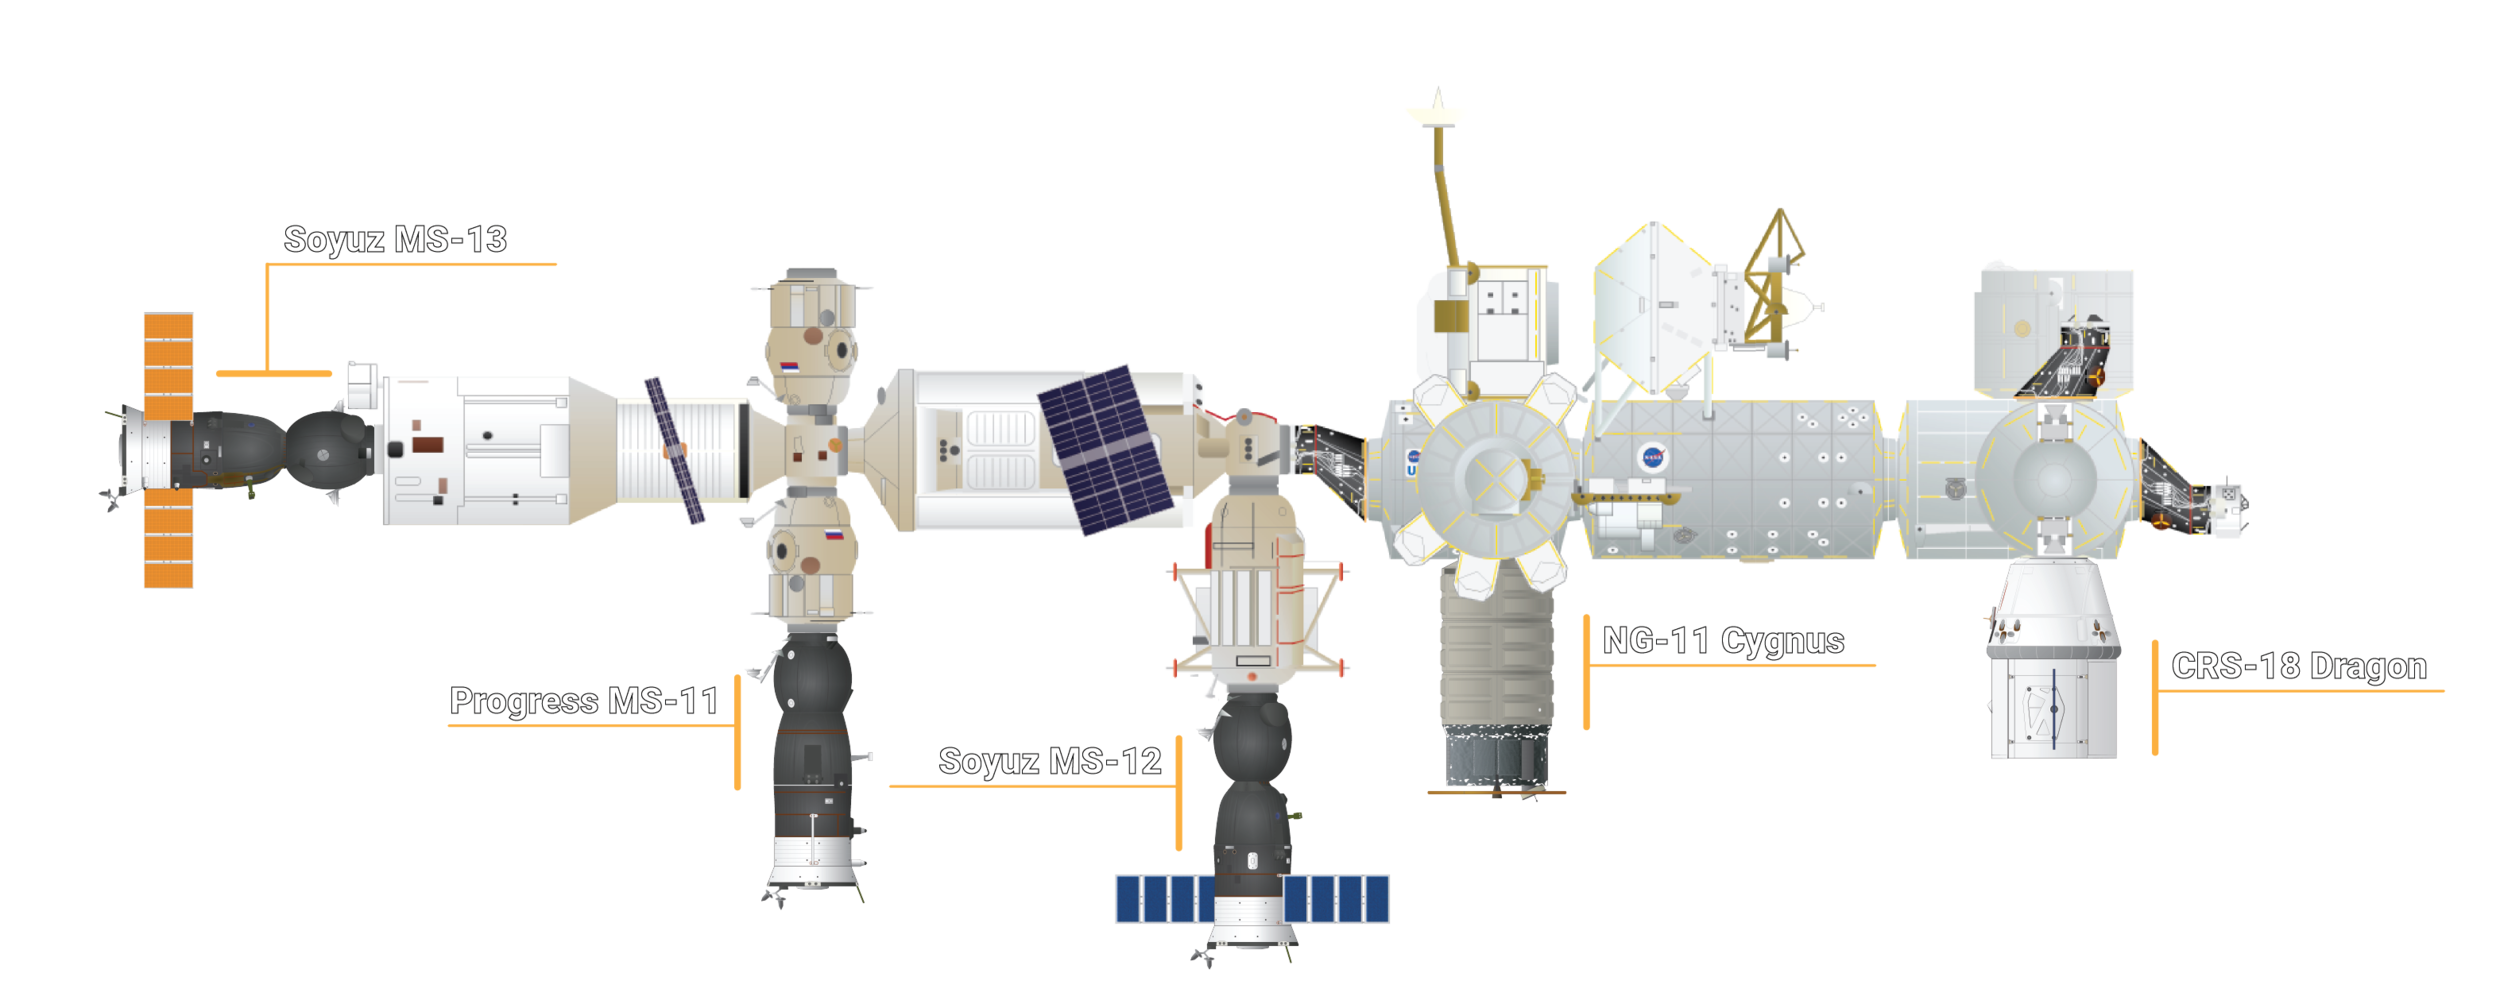 The ISS docking configuration following CRS-18 Dragon's arrival. Credit: Orbital Velocity